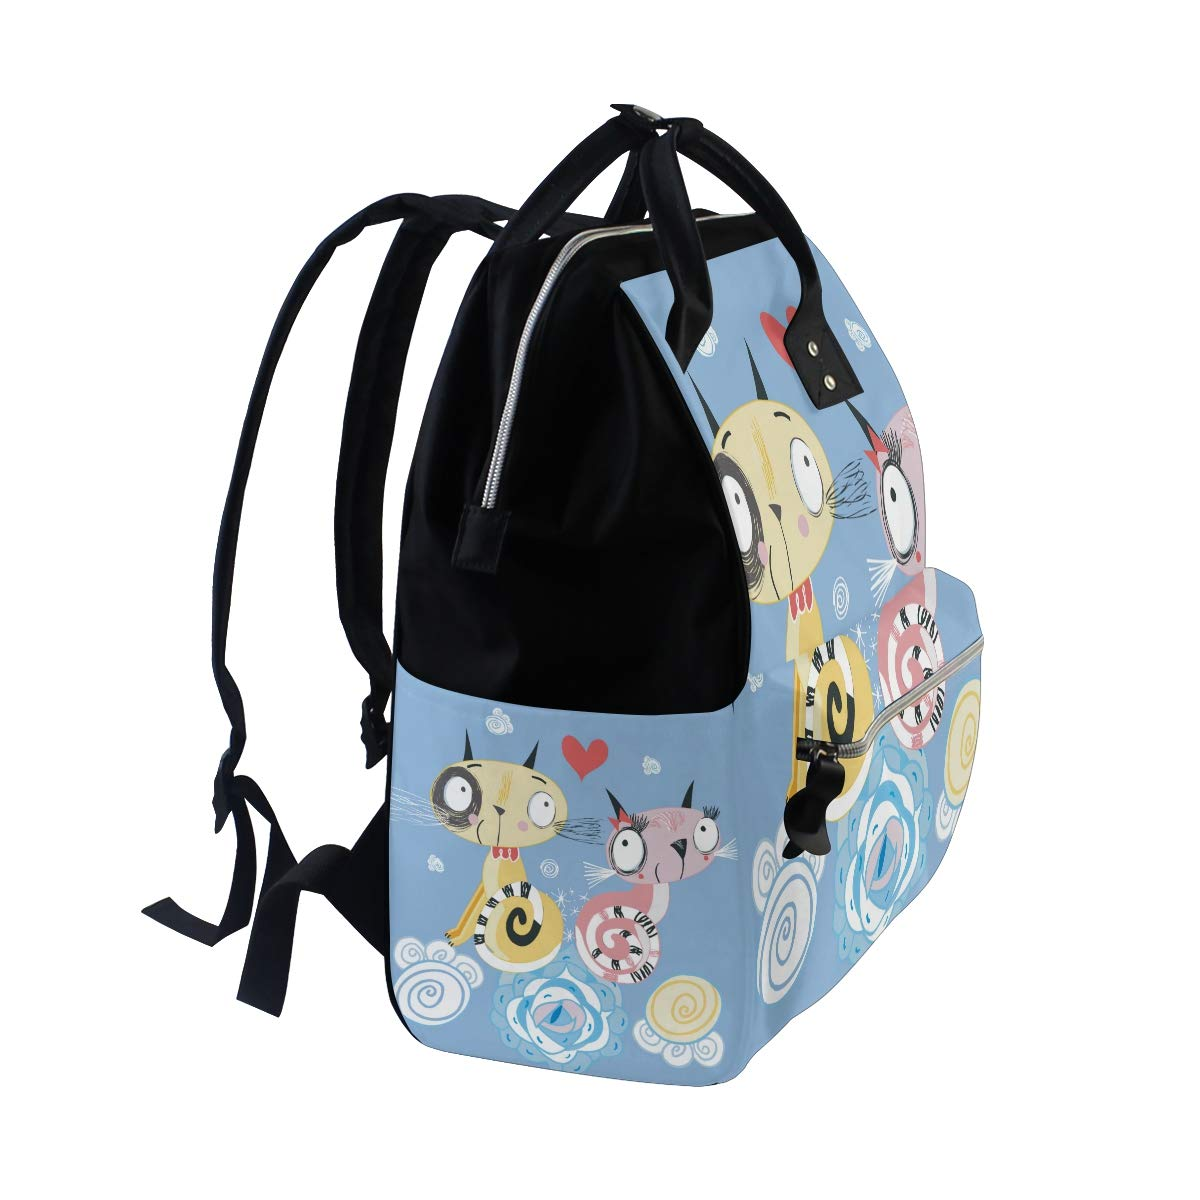 a1d7019abd53 Amazon.com   Cat Kitty Cute Diaper Bag Backpack Mom Bag Casual Lightweight  Large Capacity for Travel Mammy Women Girls   Baby